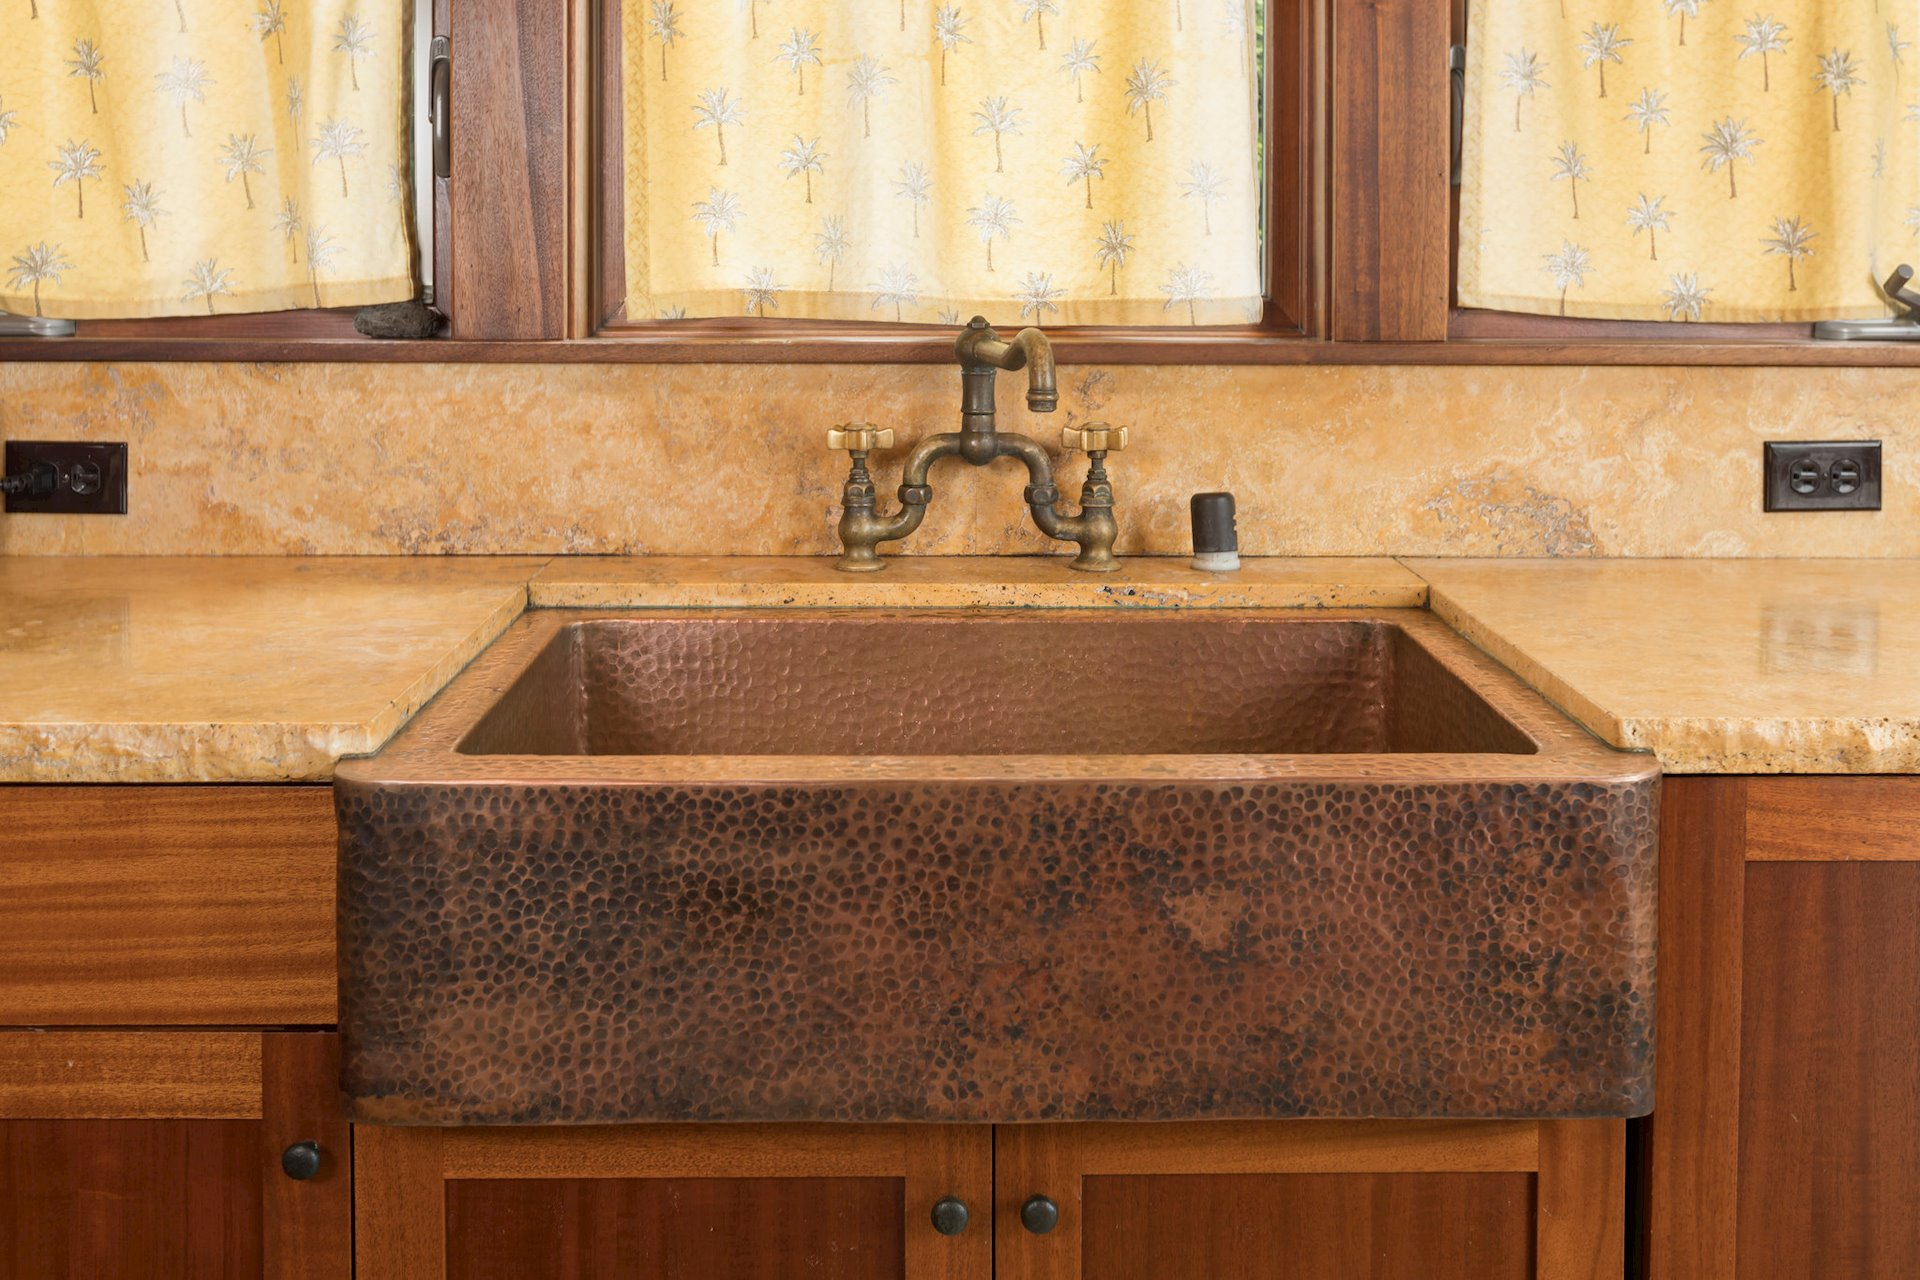 Hammered copper sinks throughout the home pair beautifully with the Sienna Peruvian travertine.